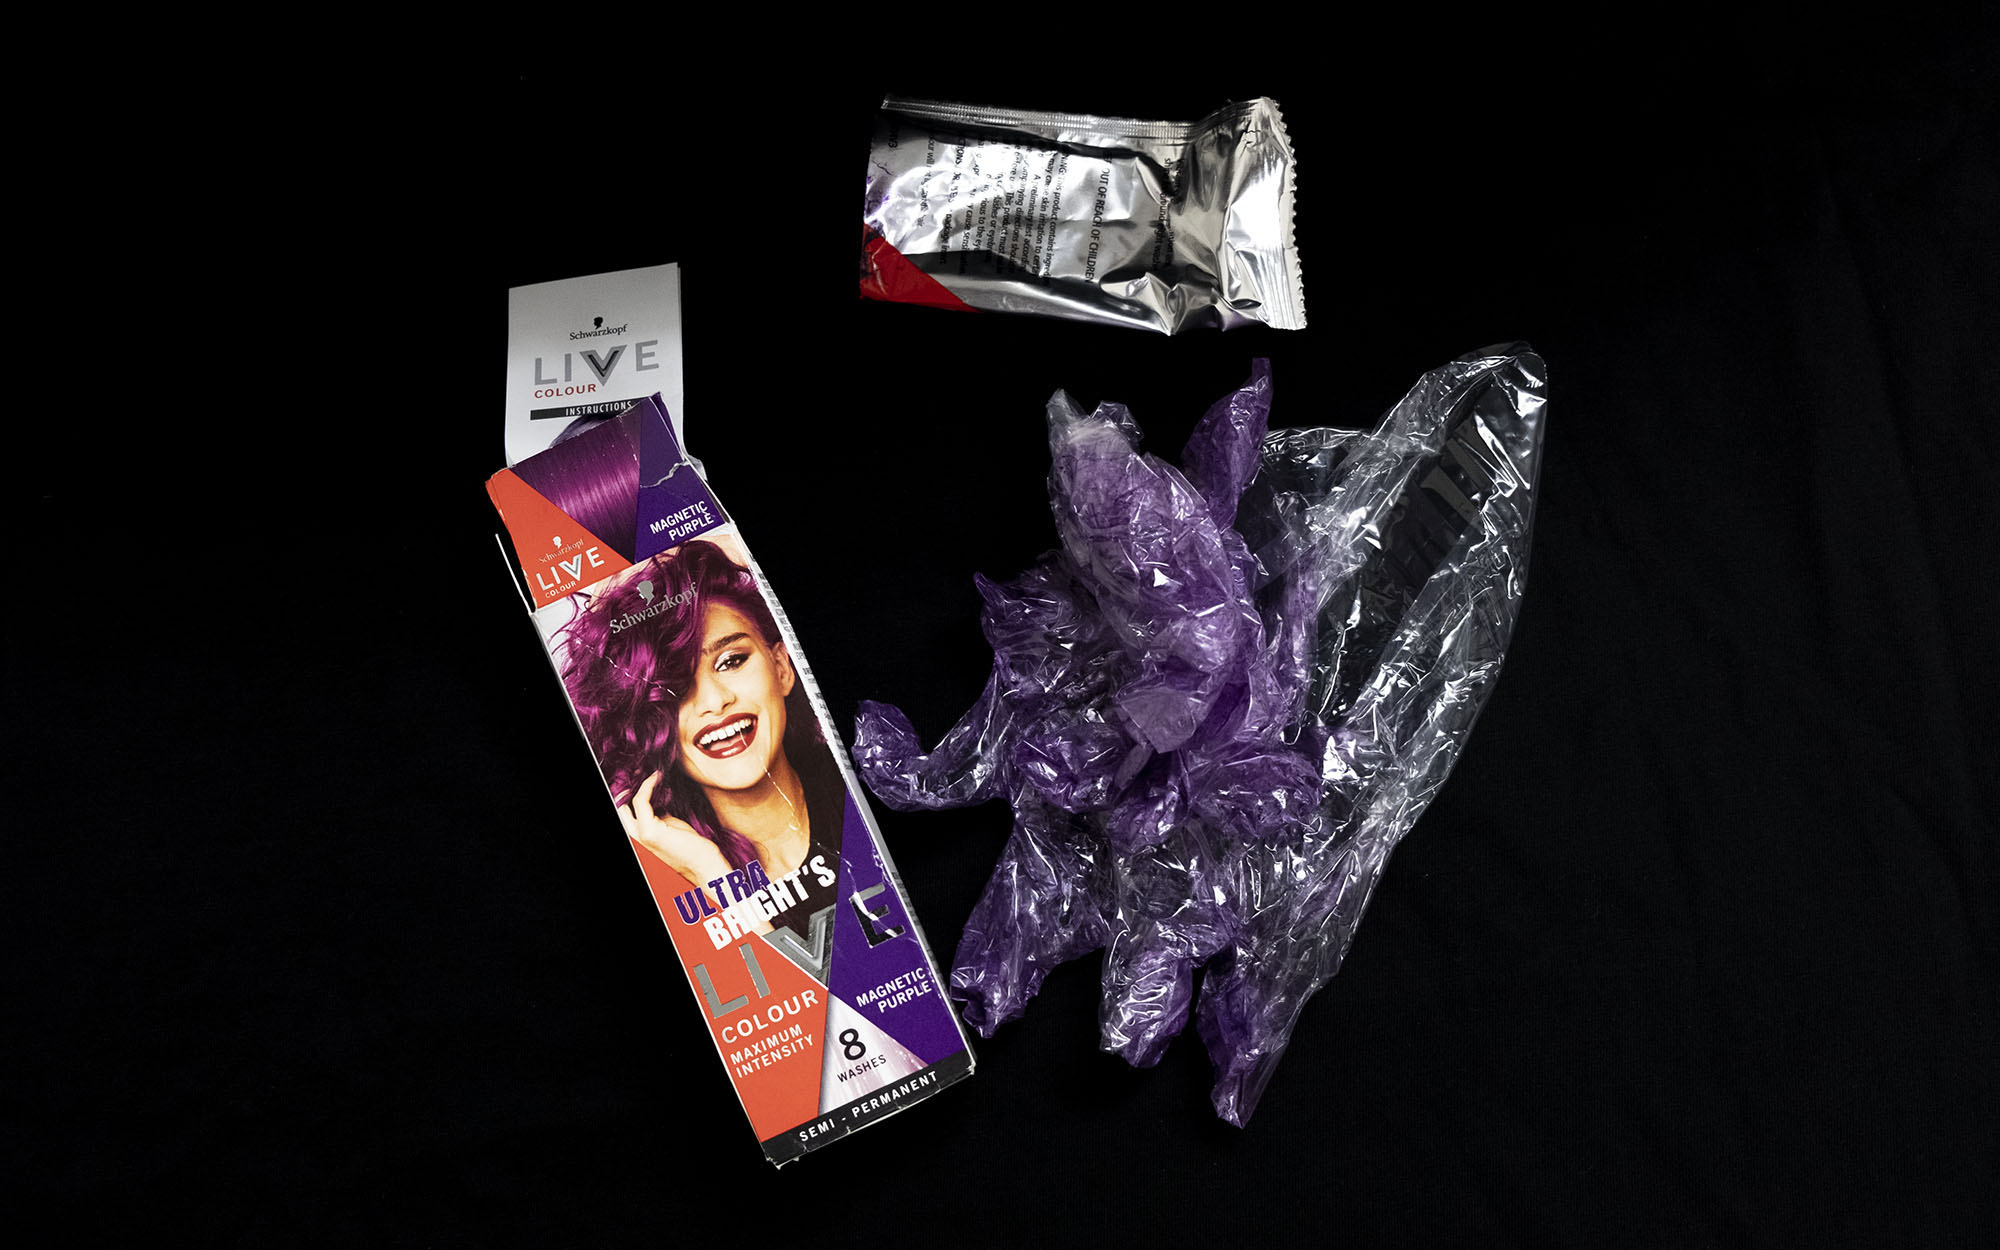 The contents of a used box of hair dye, including gloves dyed purple from application